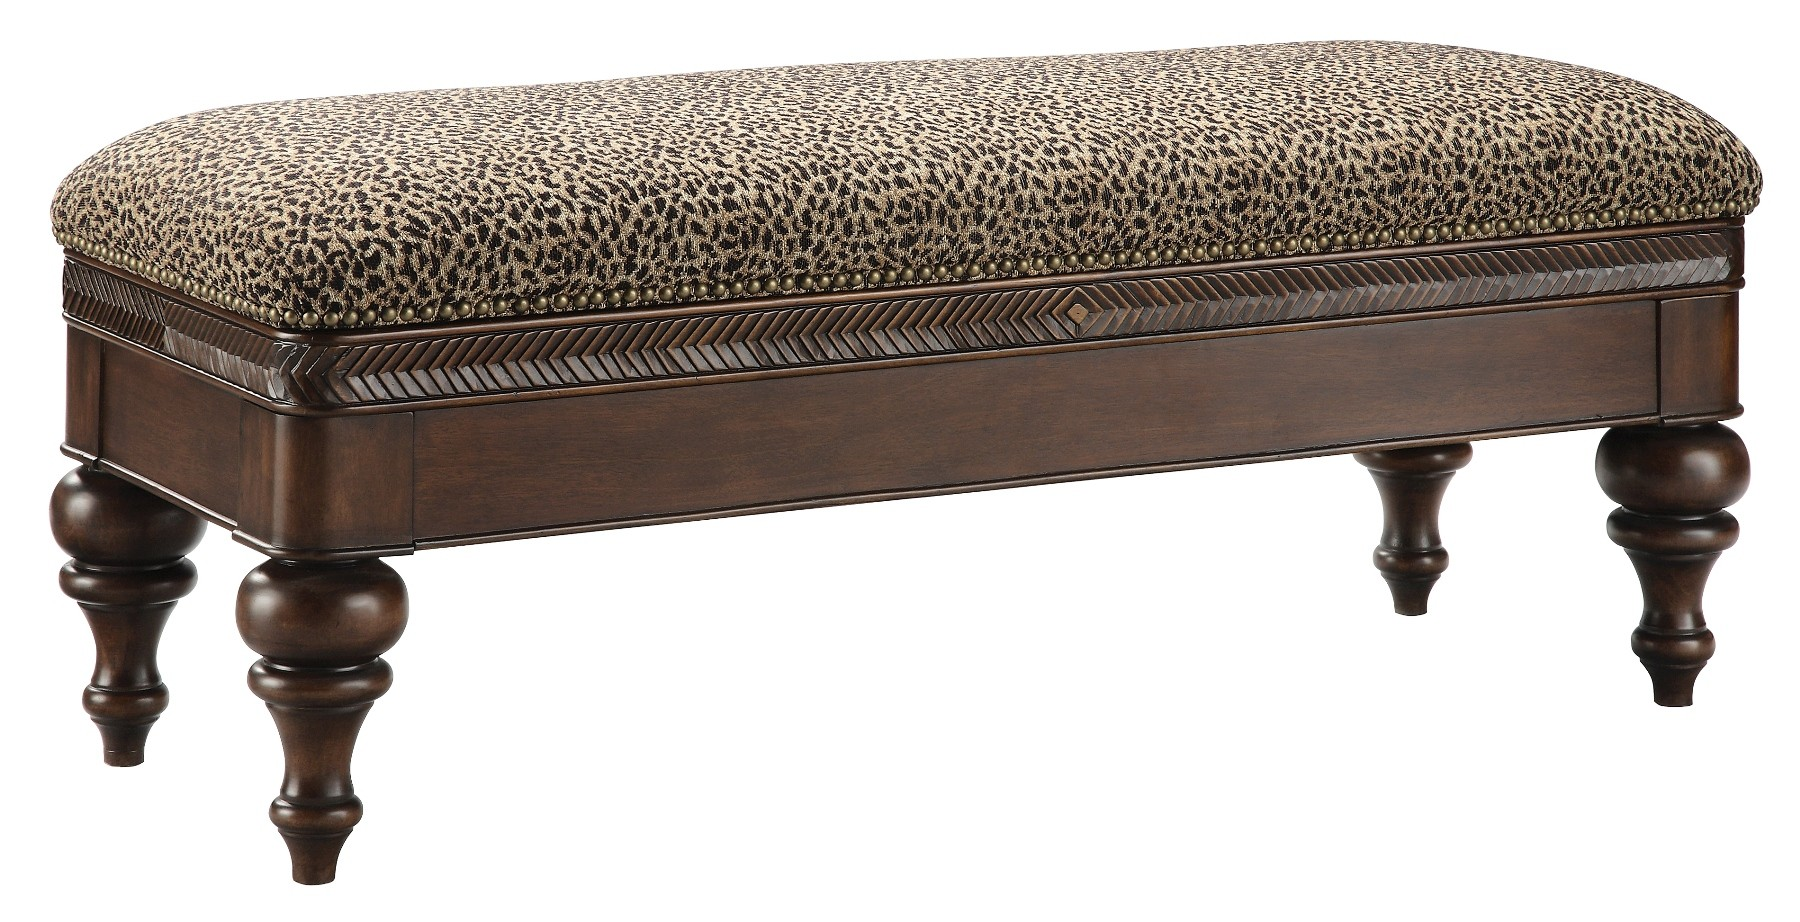 Leopard pattern bench 80820 stein world Leopard print bench